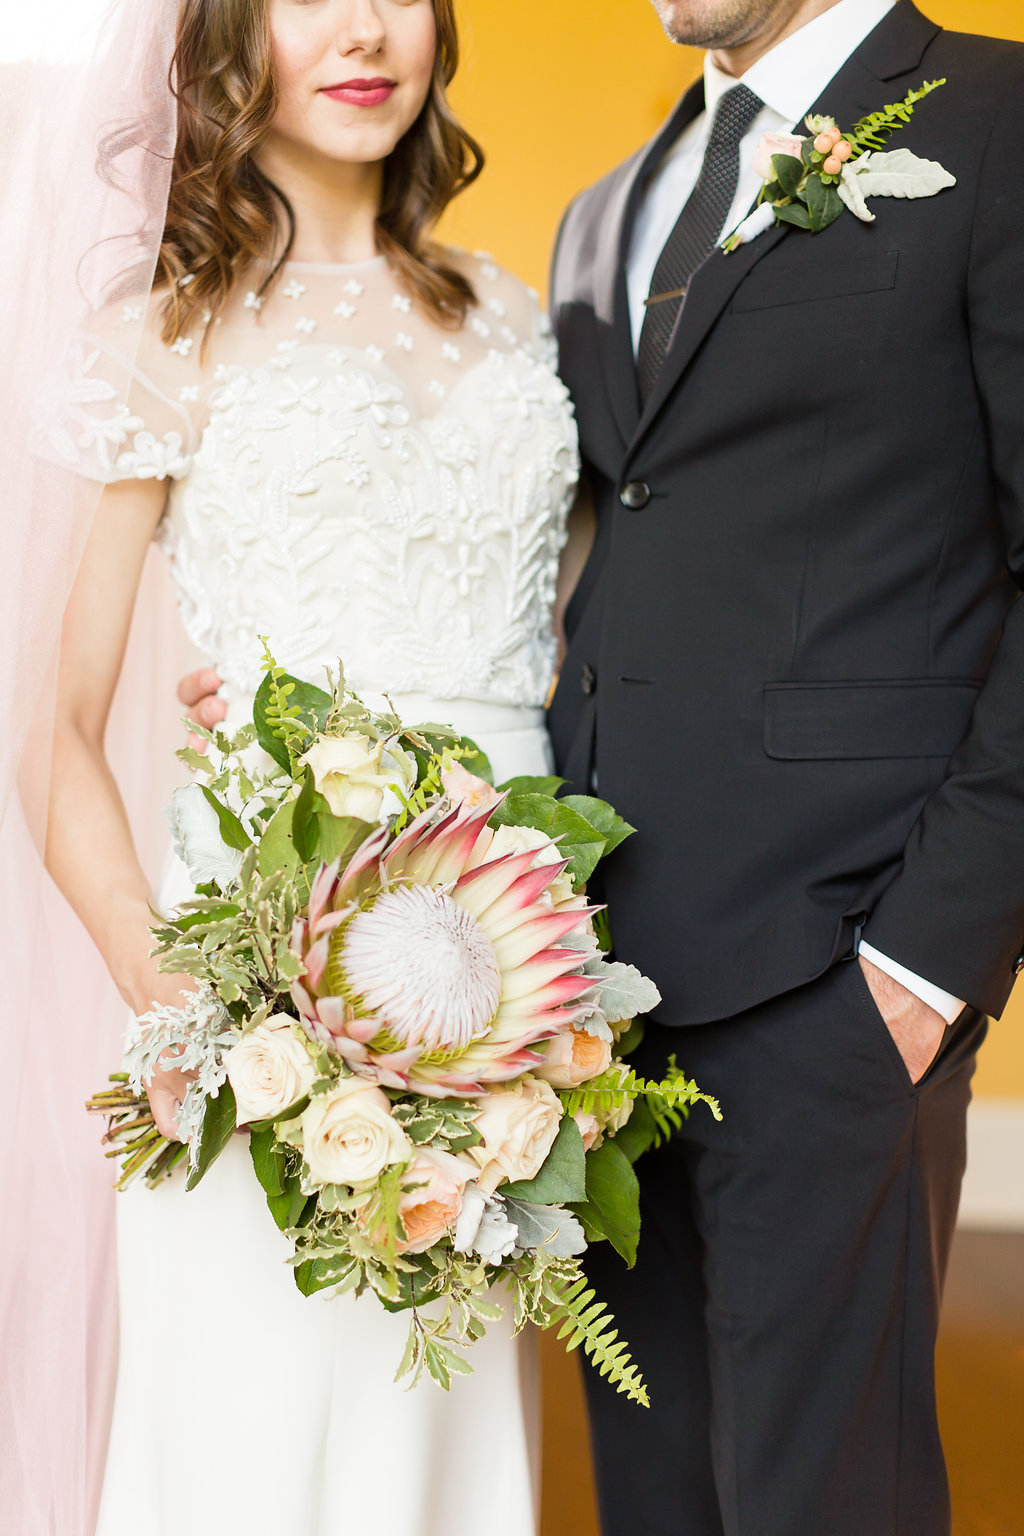 Locklane Weddings & Events +King Prothea Bouquet +Wedding Inspiration + GranDale Manor + Caley King Newberry